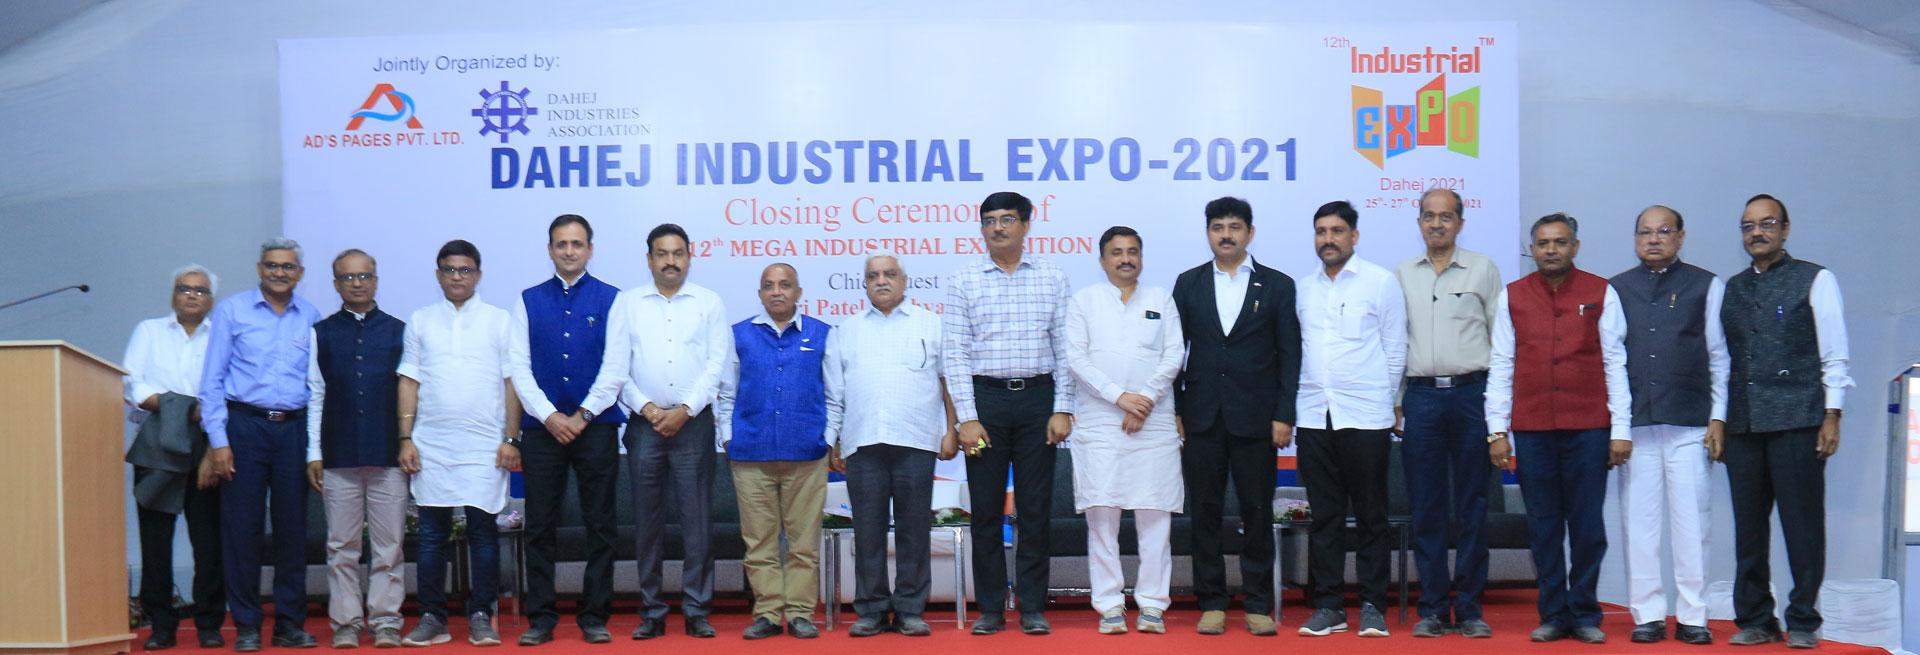 industrial exhibition, industrial expo, industrial trade